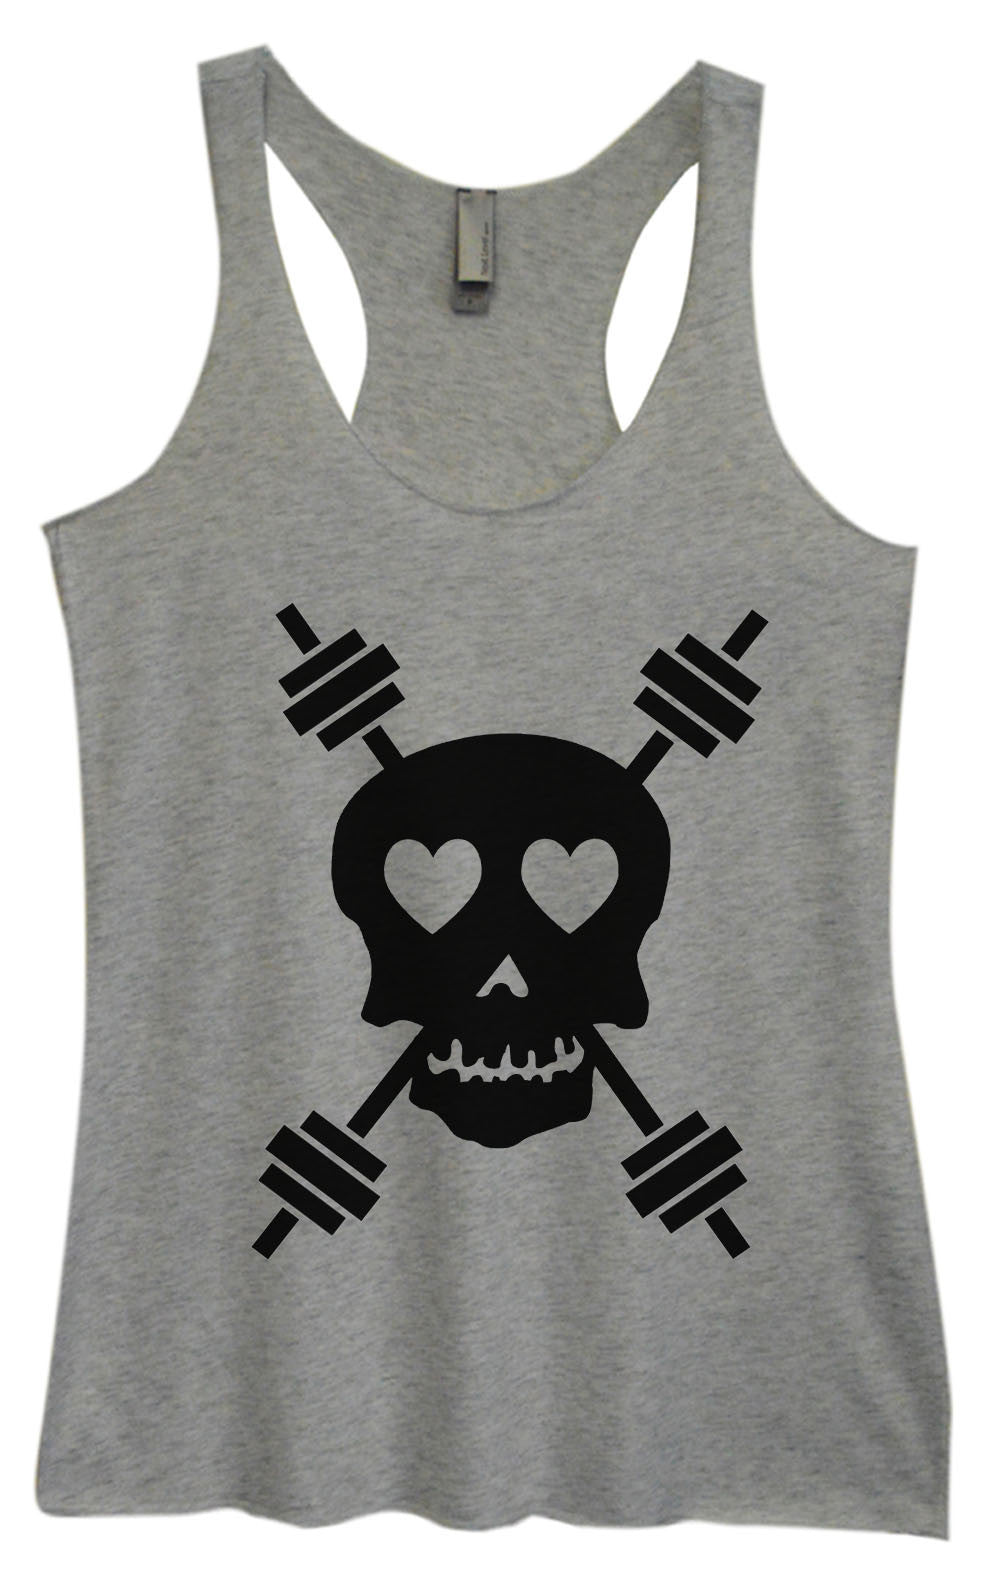 Womens Fashion Triblend Tank Top - Skull - Tri-653 - Funny Shirts Tank Tops Burnouts and Triblends  - 1